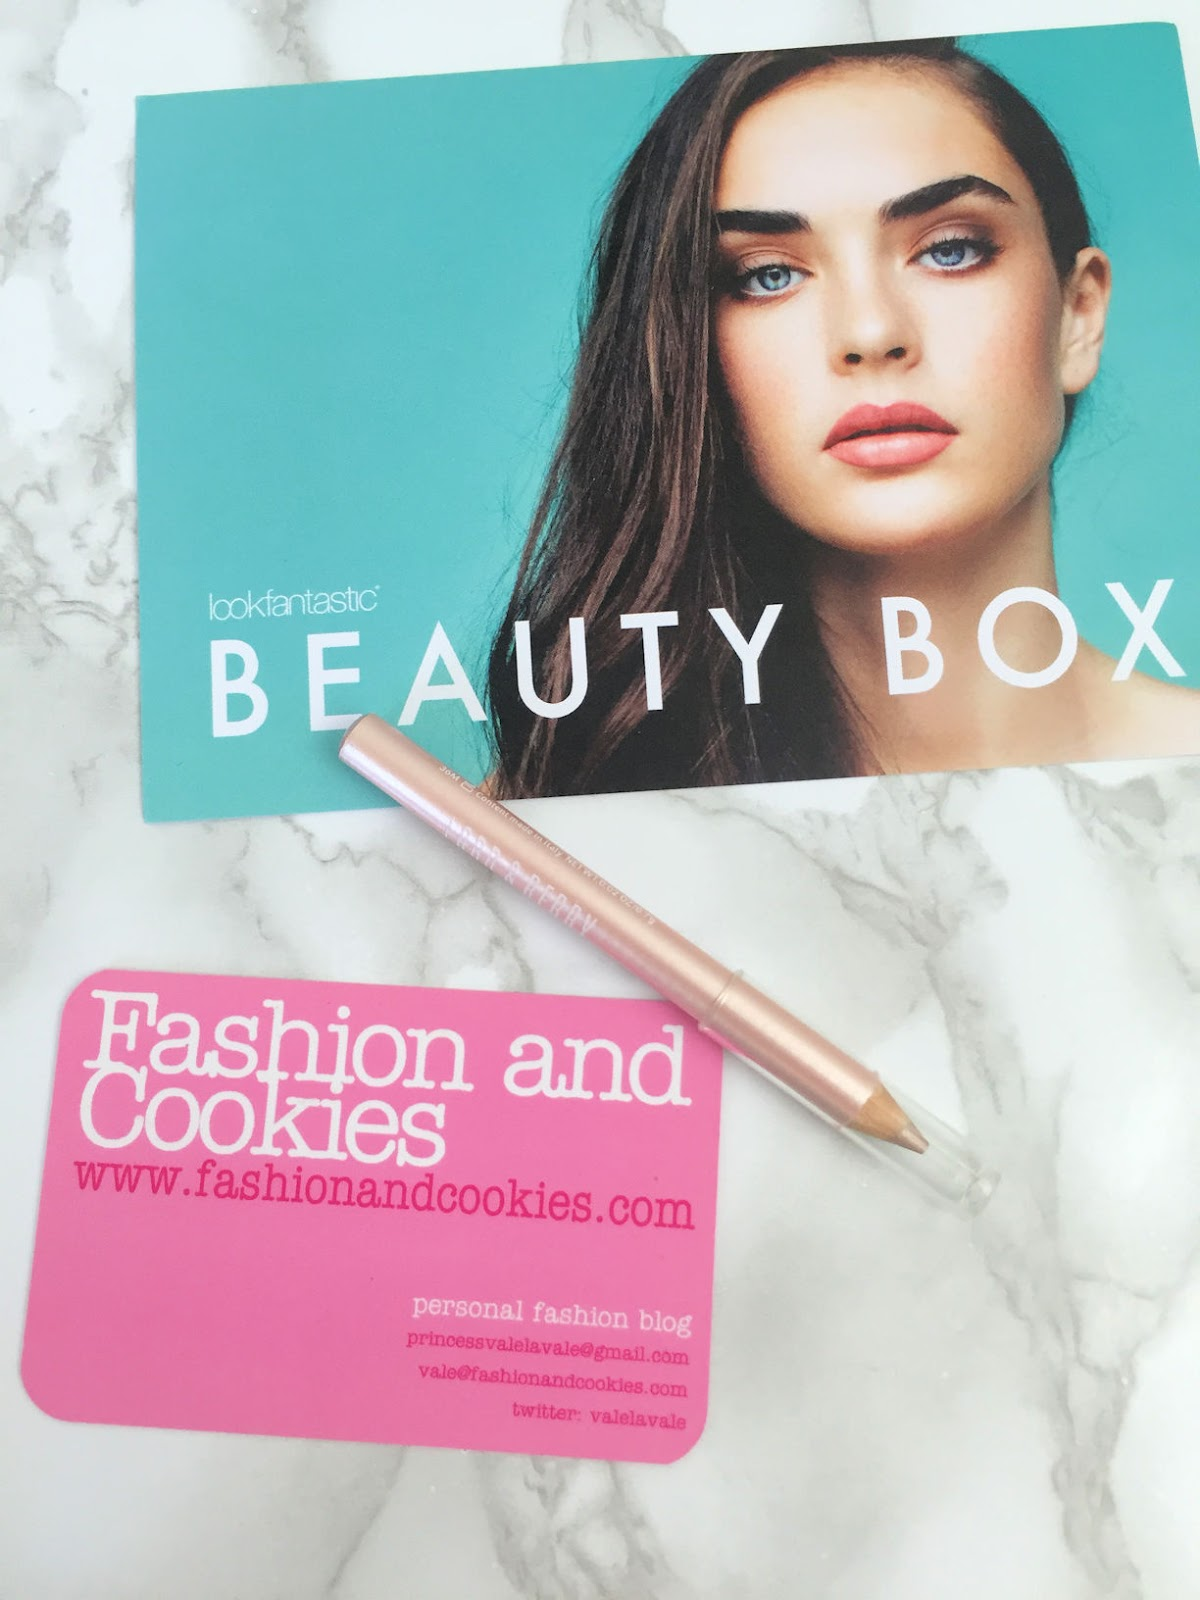 Lookfantastic Beauty Box di Settembre 2016 Lord & Berry strobing pencil recensione su Fashion and Cookies beauty blog, beauty blogger